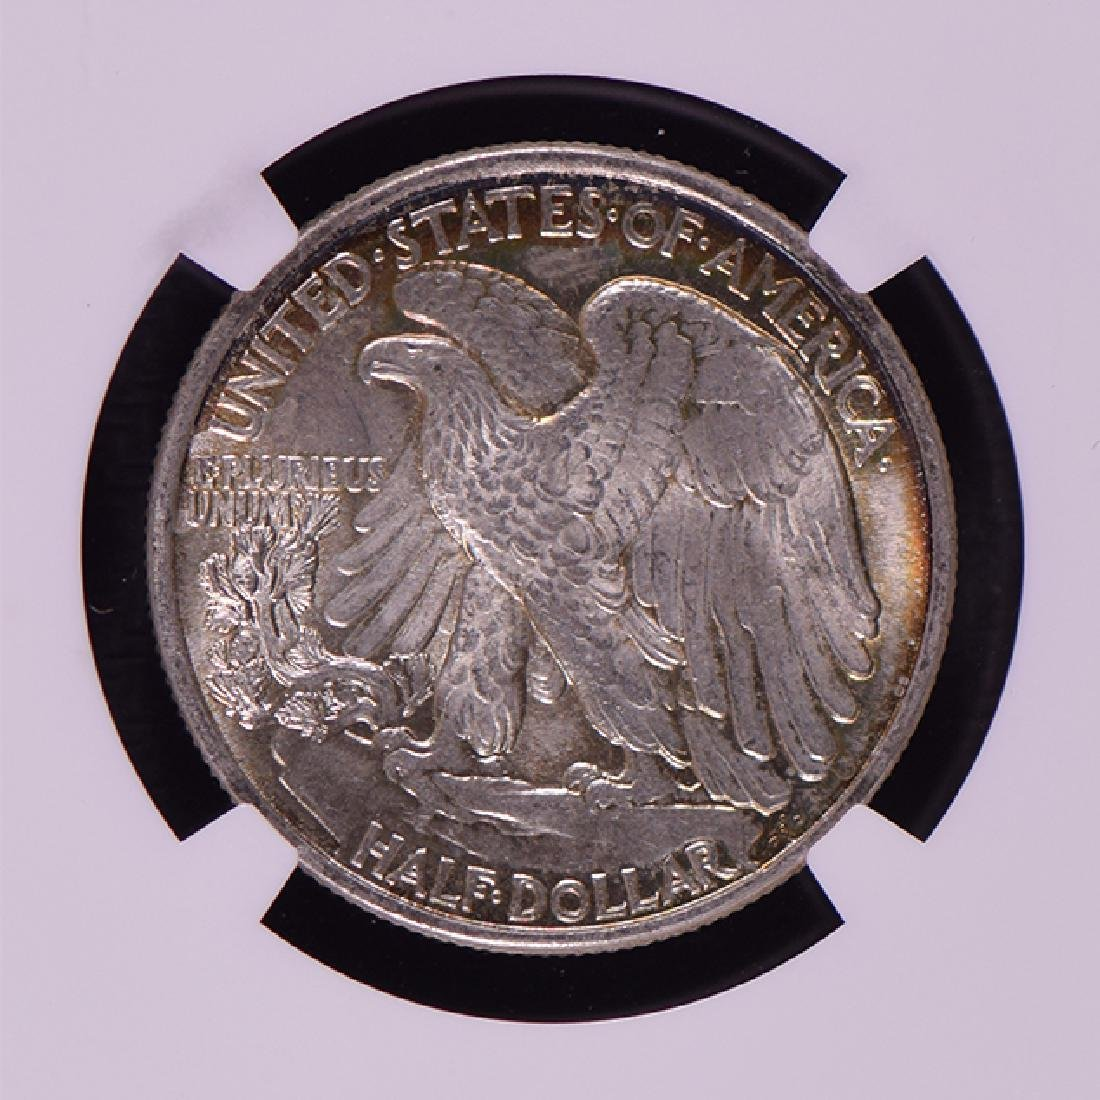 1943 Walking Liberty Half Dollar Coin NGC MS65 - 4